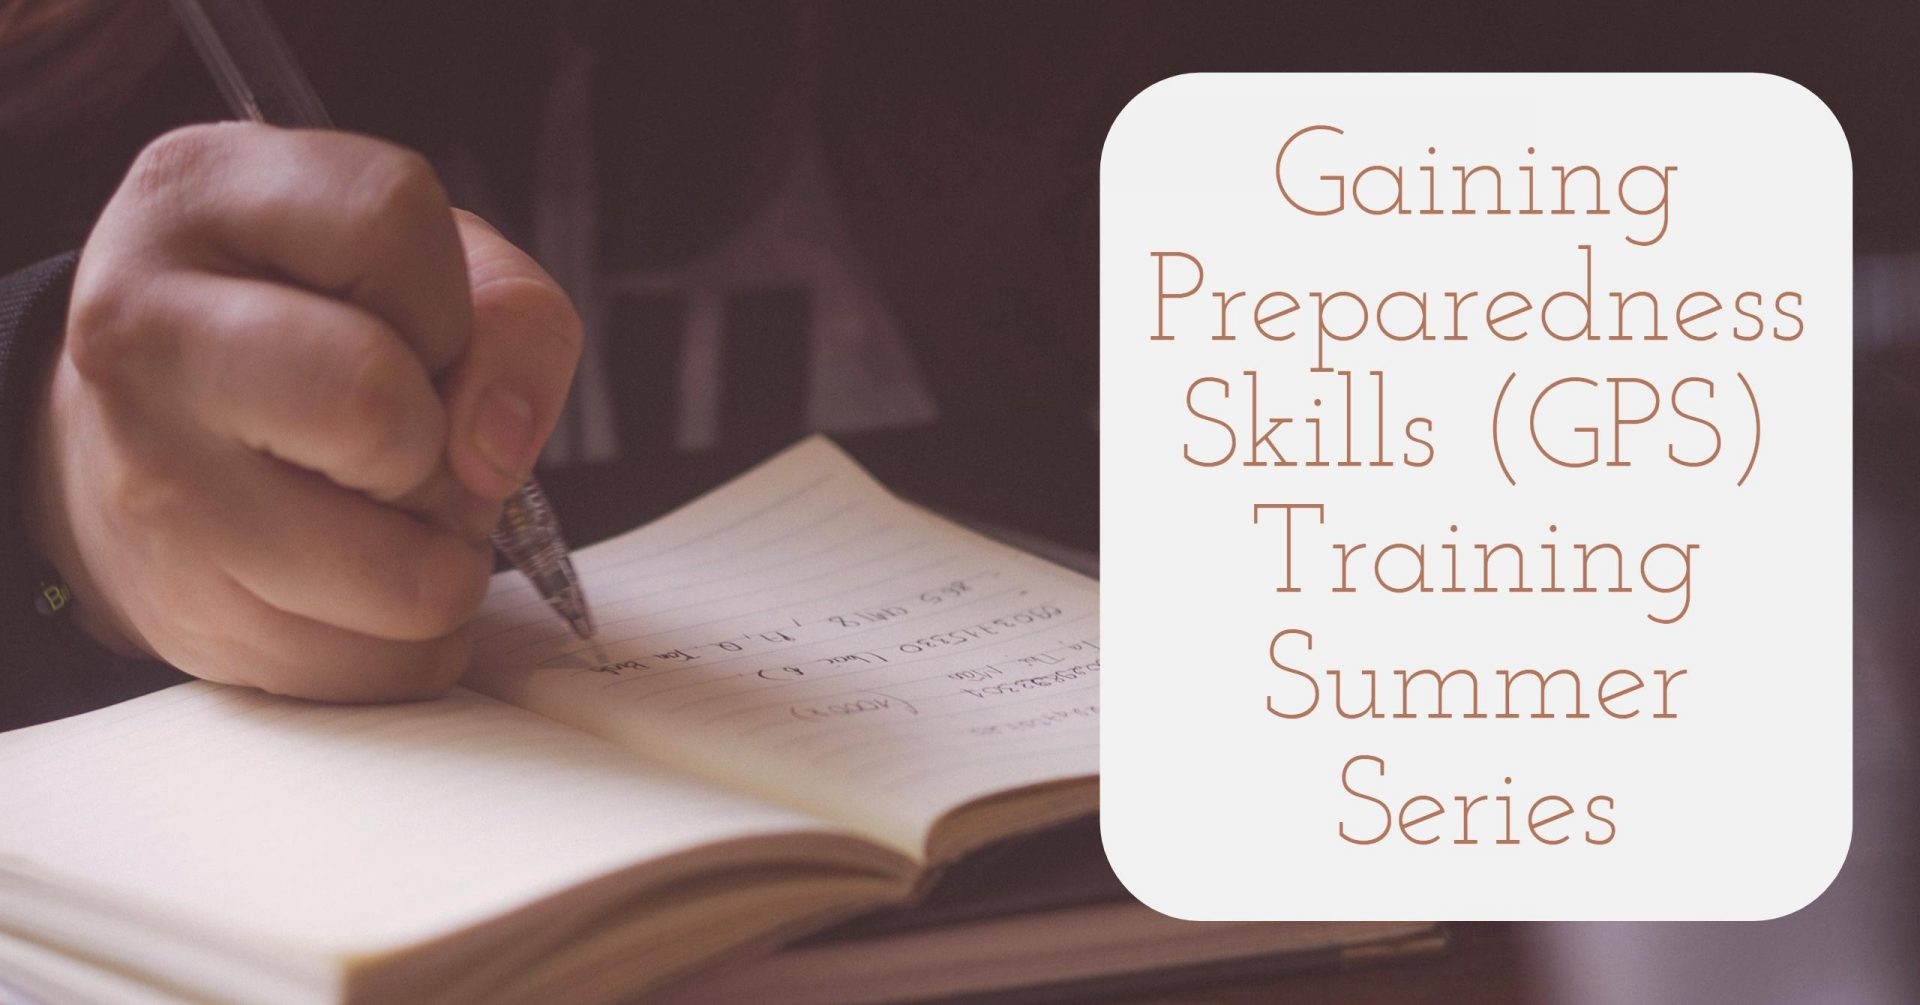 an image of a hand writing with a pen in a notebook with a white text box over the right-hand side of the image. The text reads: Gaining Preparedness Skills (GPS) Training - Summer Series